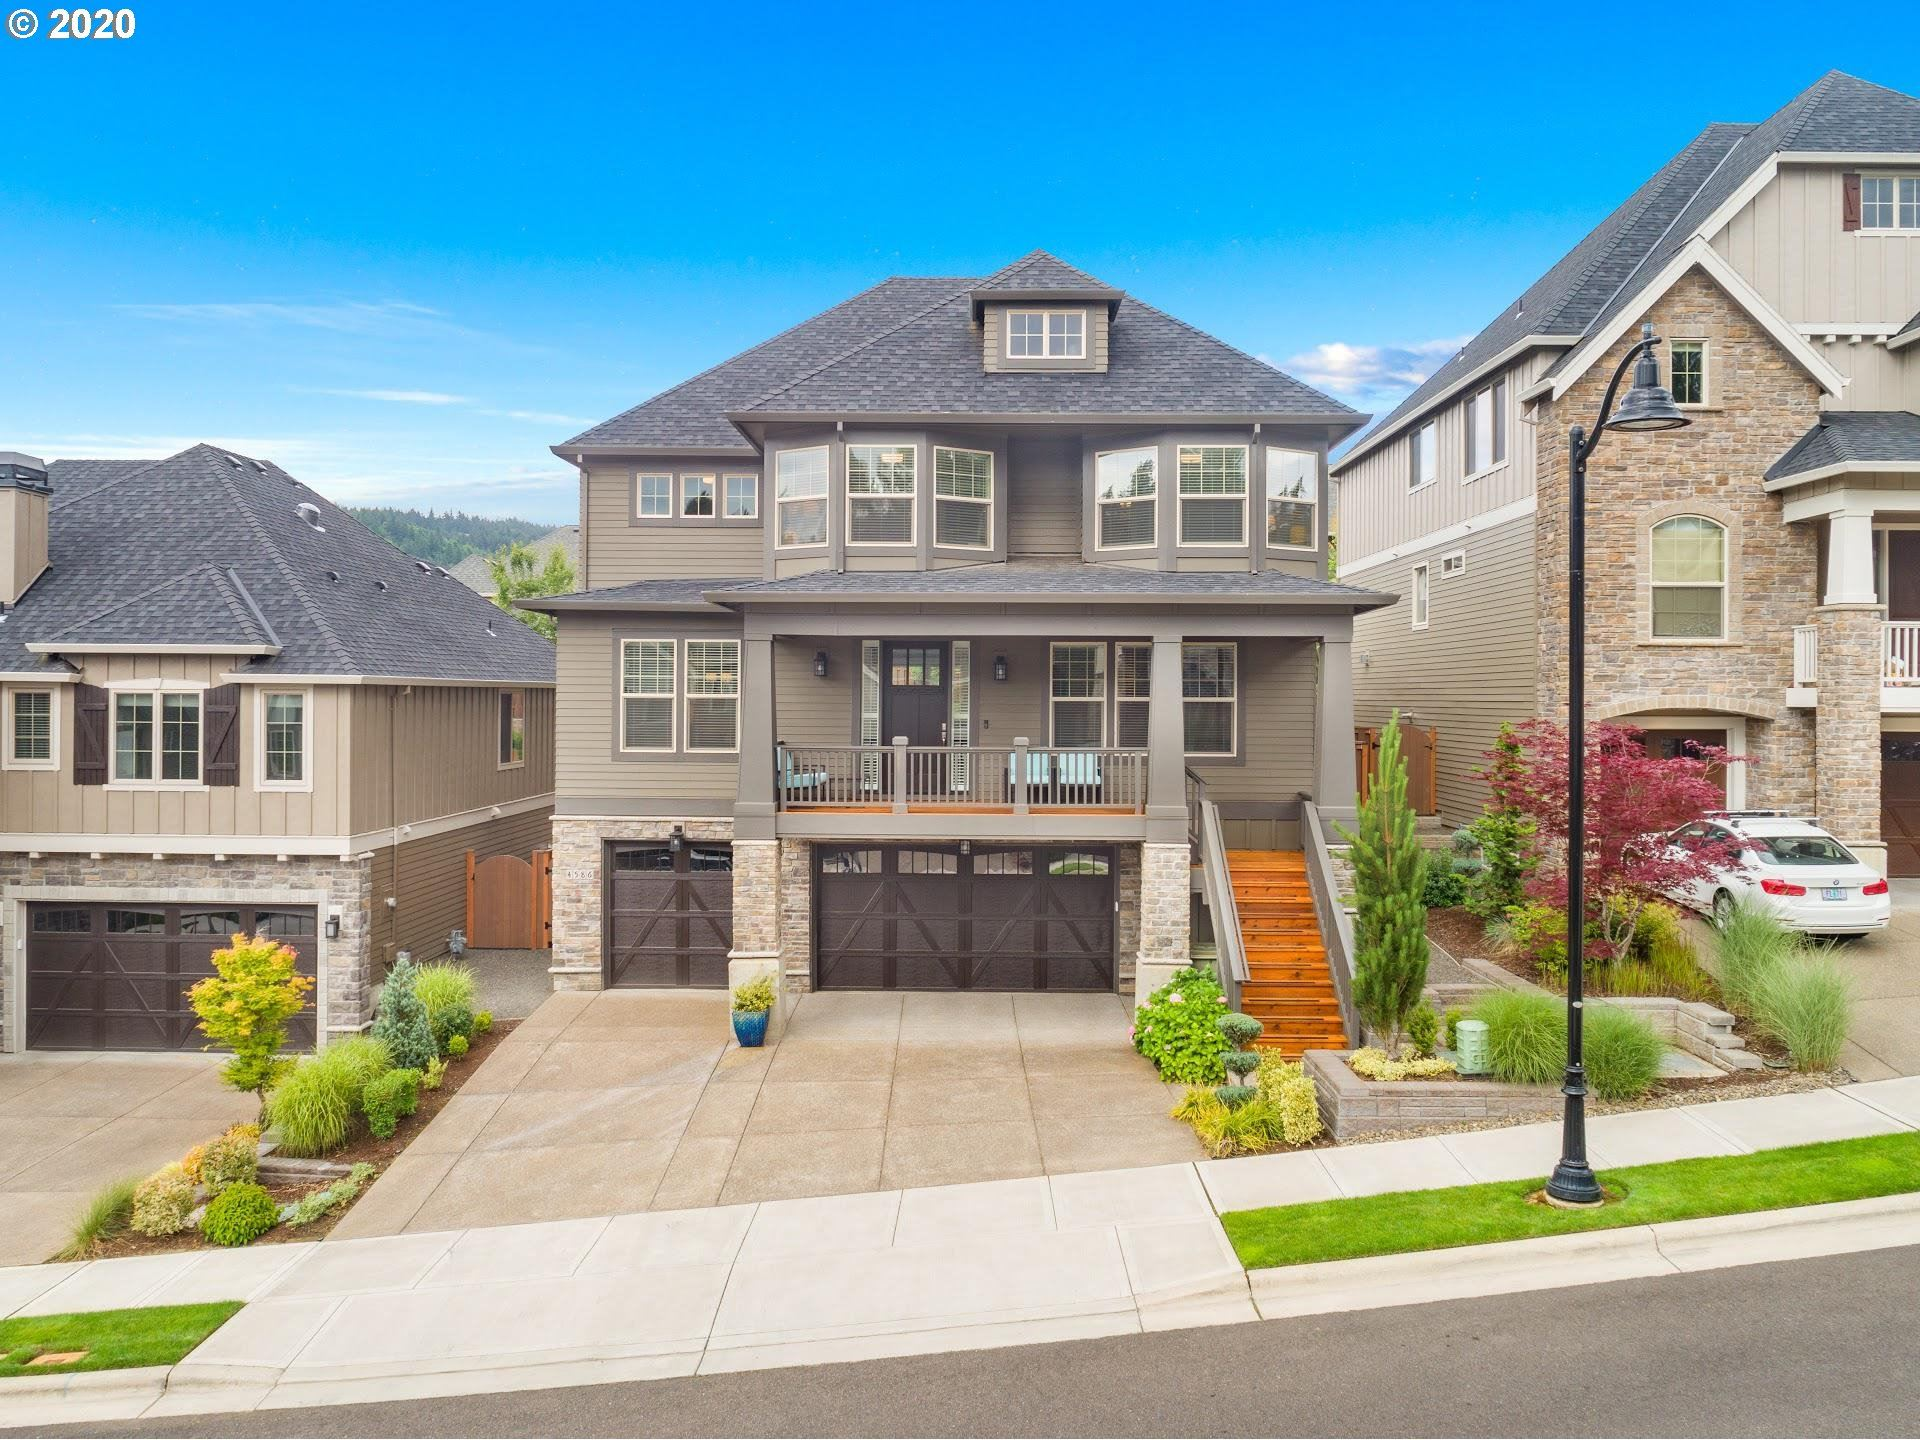 4586 NW 134TH AVE, Portland, OR 97229 - MLS#: 20411494